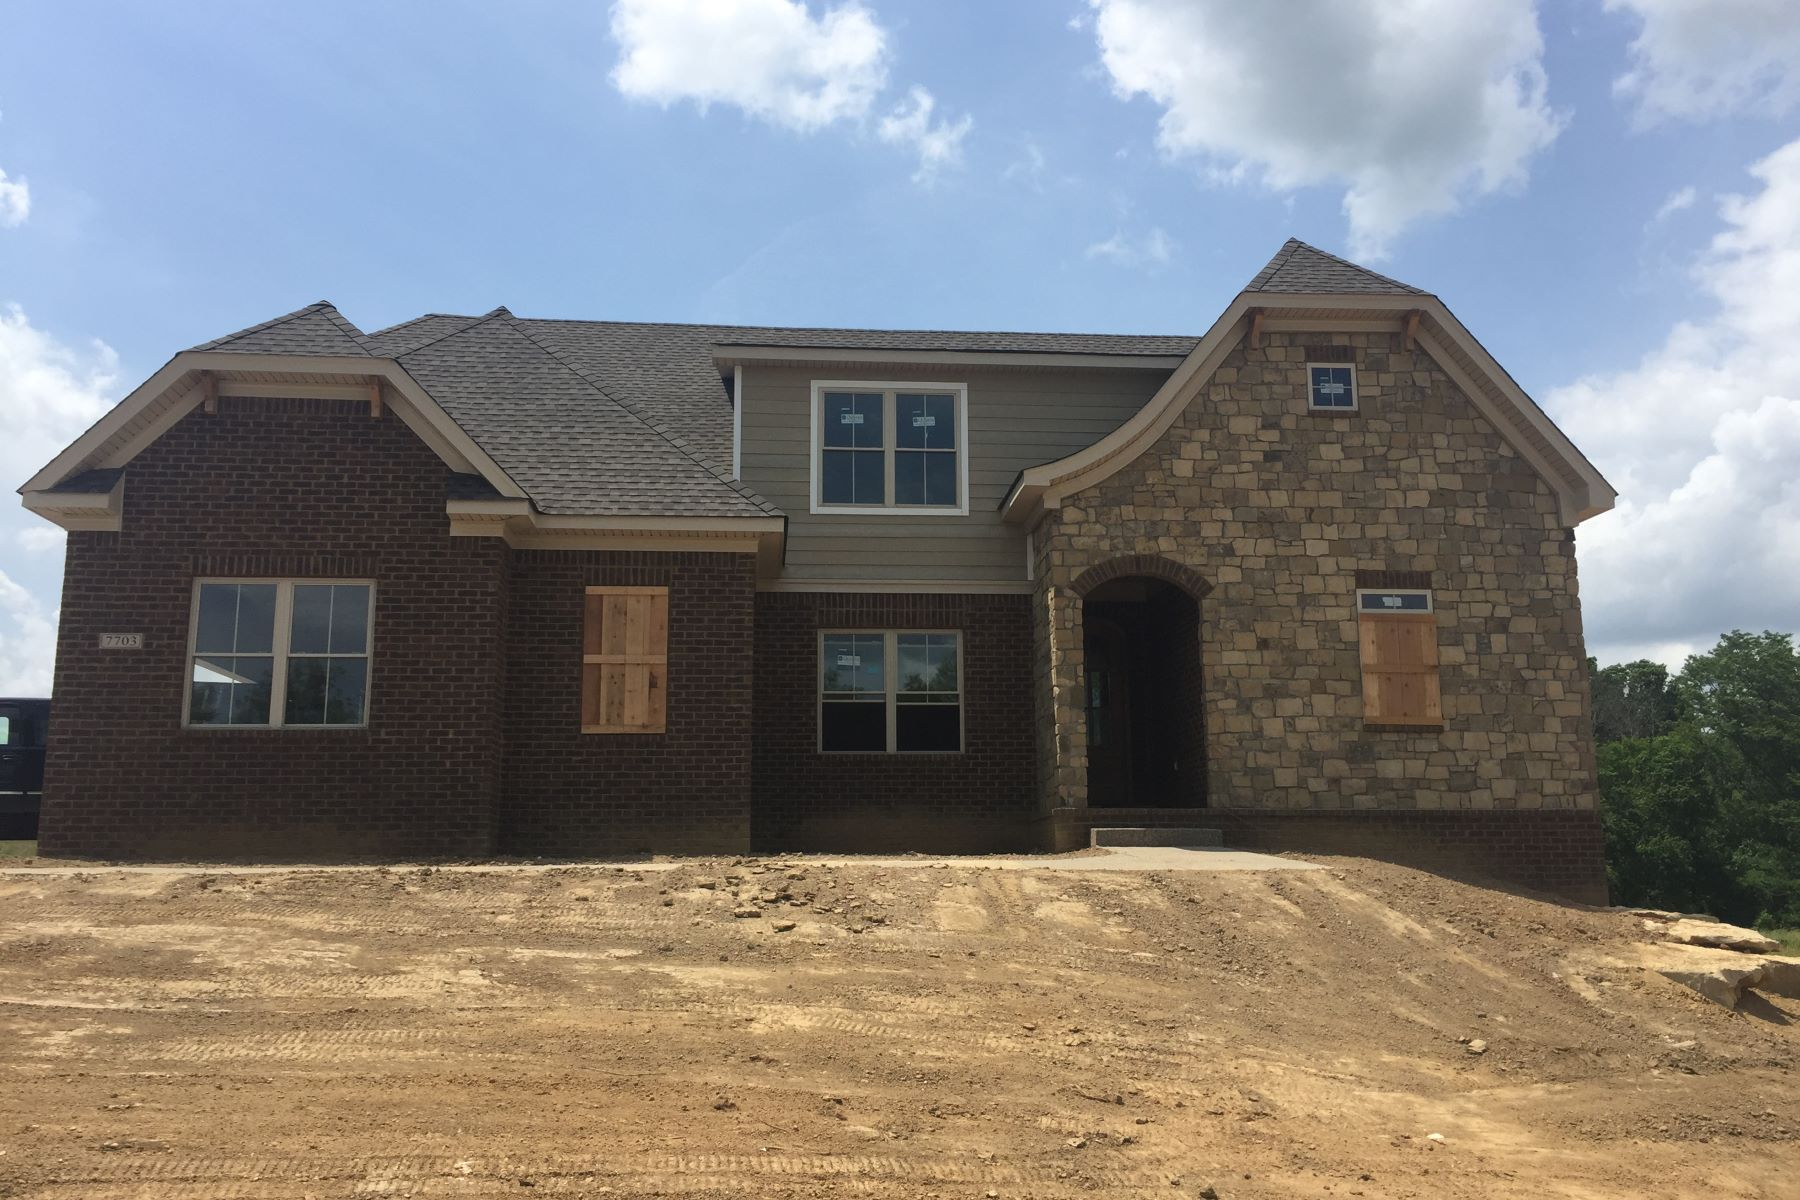 Single Family Home for Sale at 7703 Keller Way Crestwood, Kentucky 40014 United States